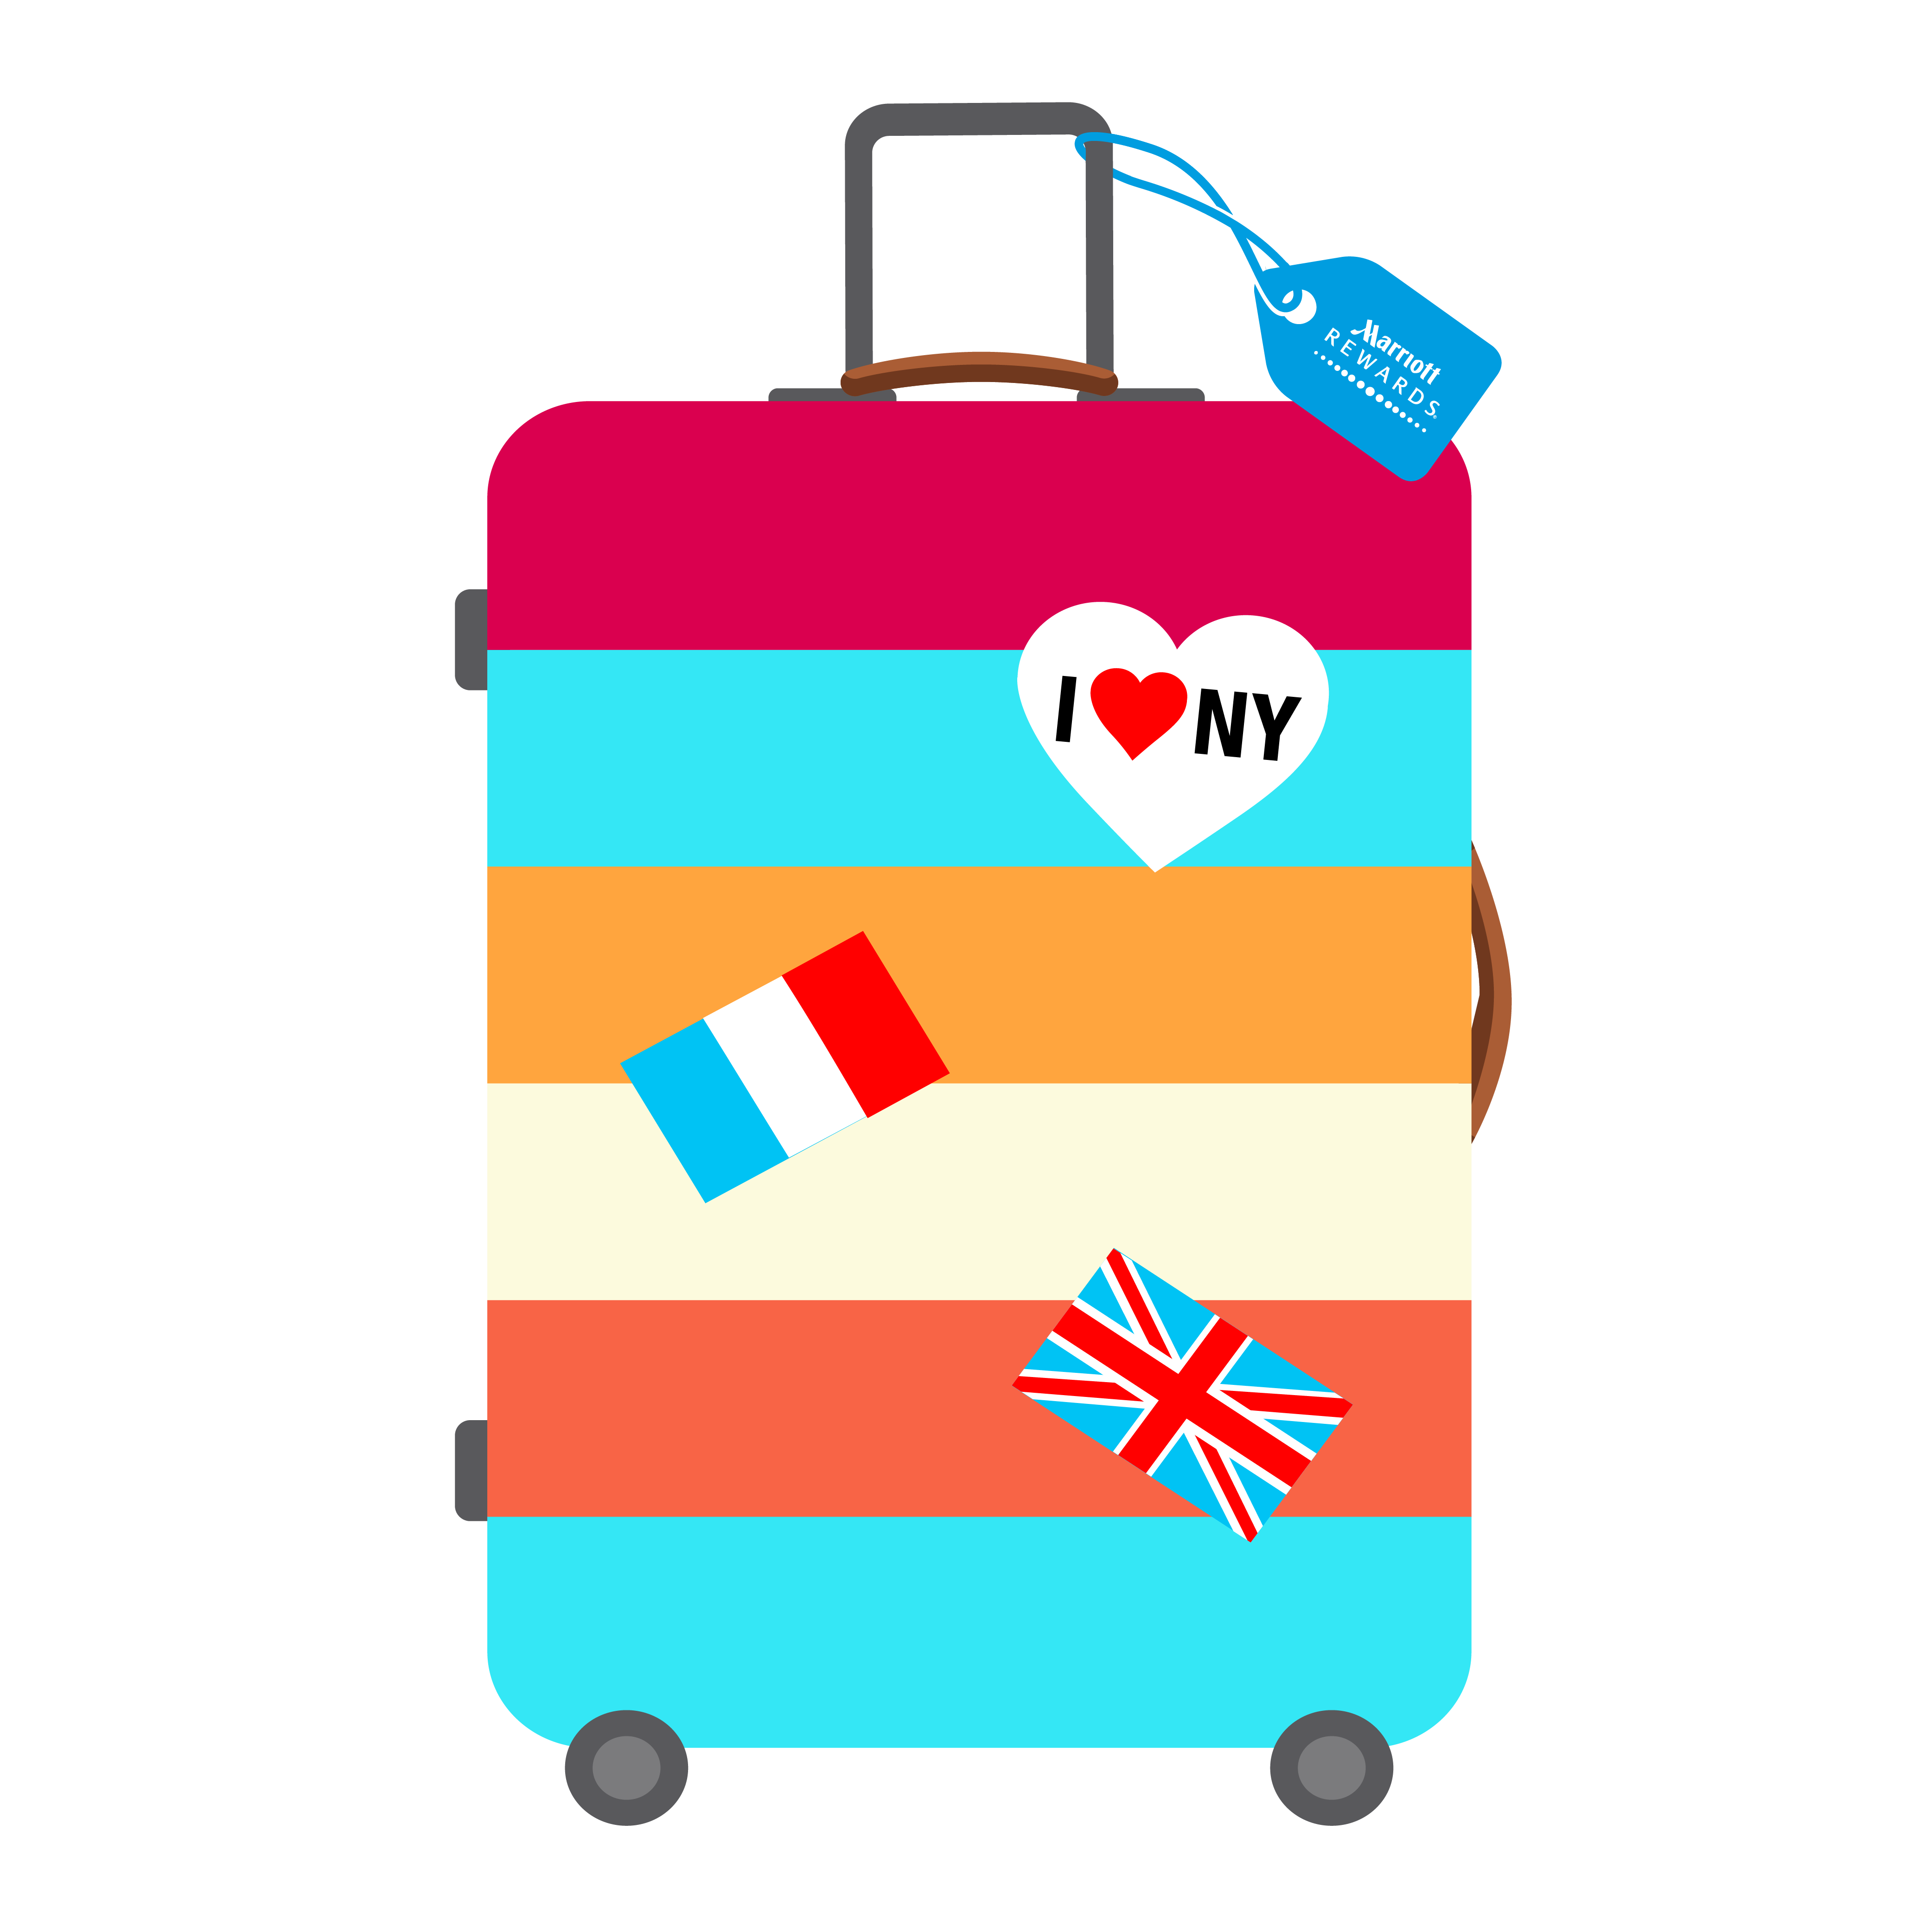 Luxetips marriott rewards launches. Luggage clipart travel kit